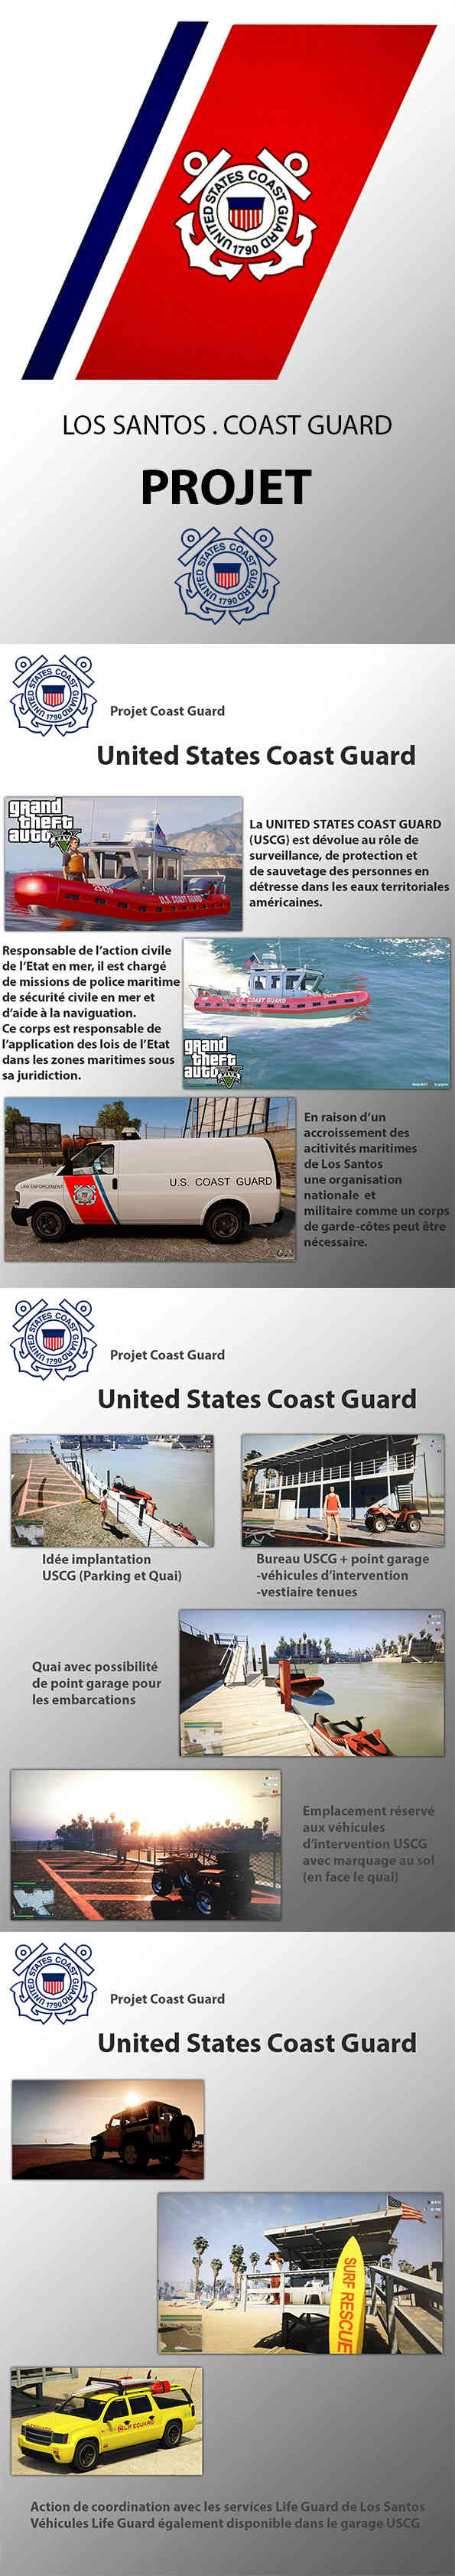 United States Coast Guard (Projet) All_pr11